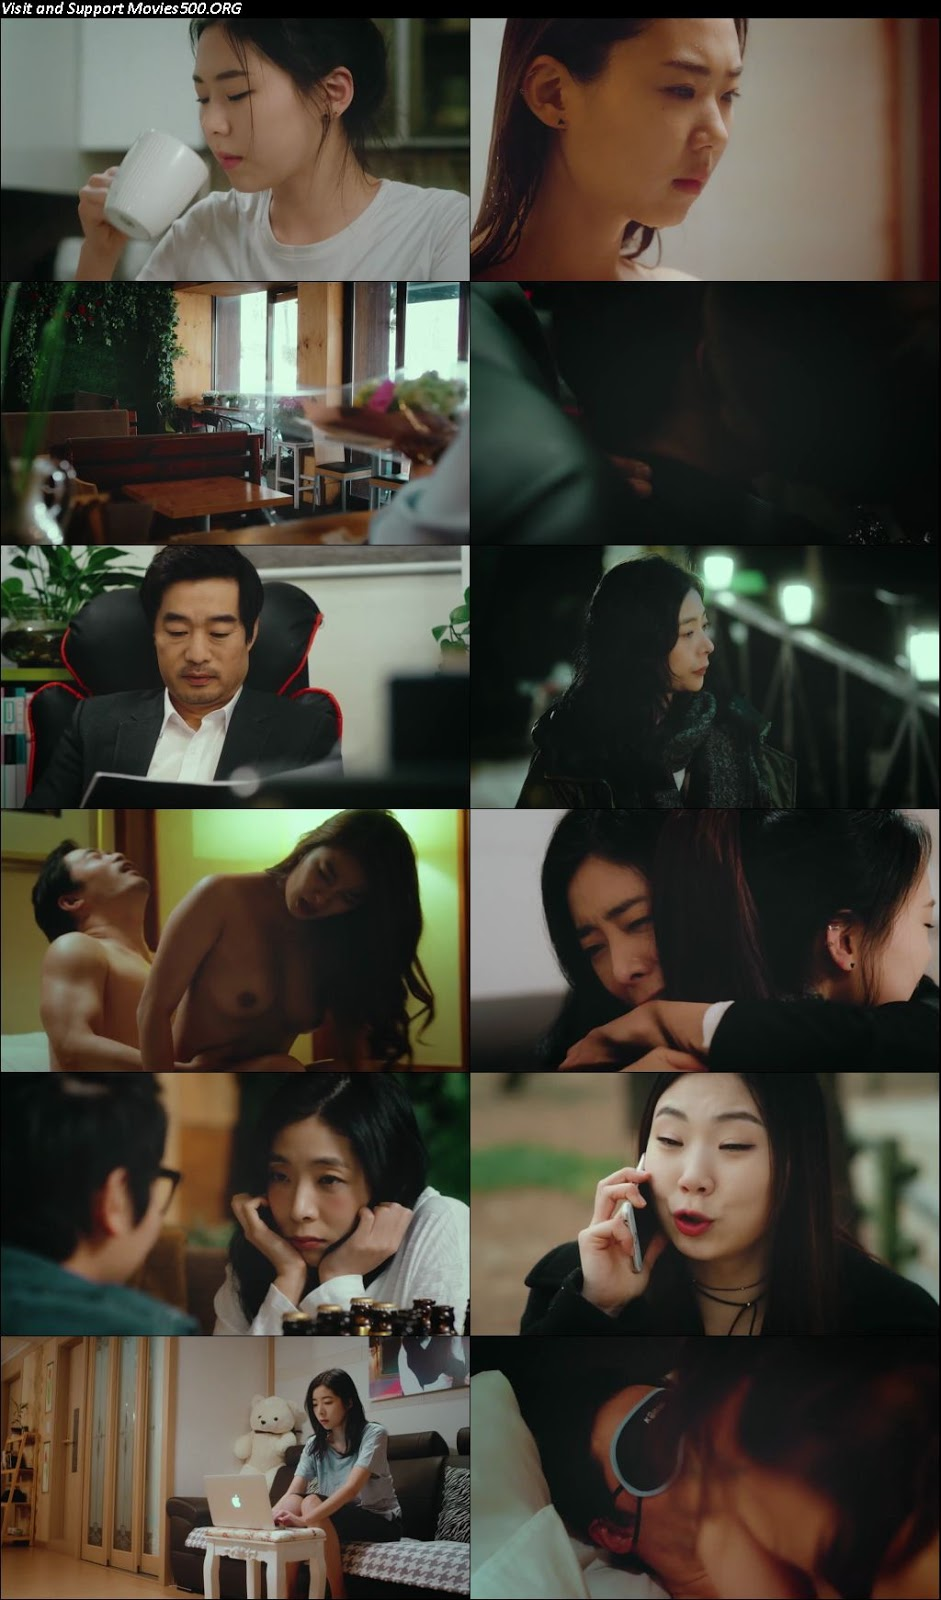 The Sisters's Scandal 2017 Adult 18+ Movie HDRip 720P 600MB at xcharge.net